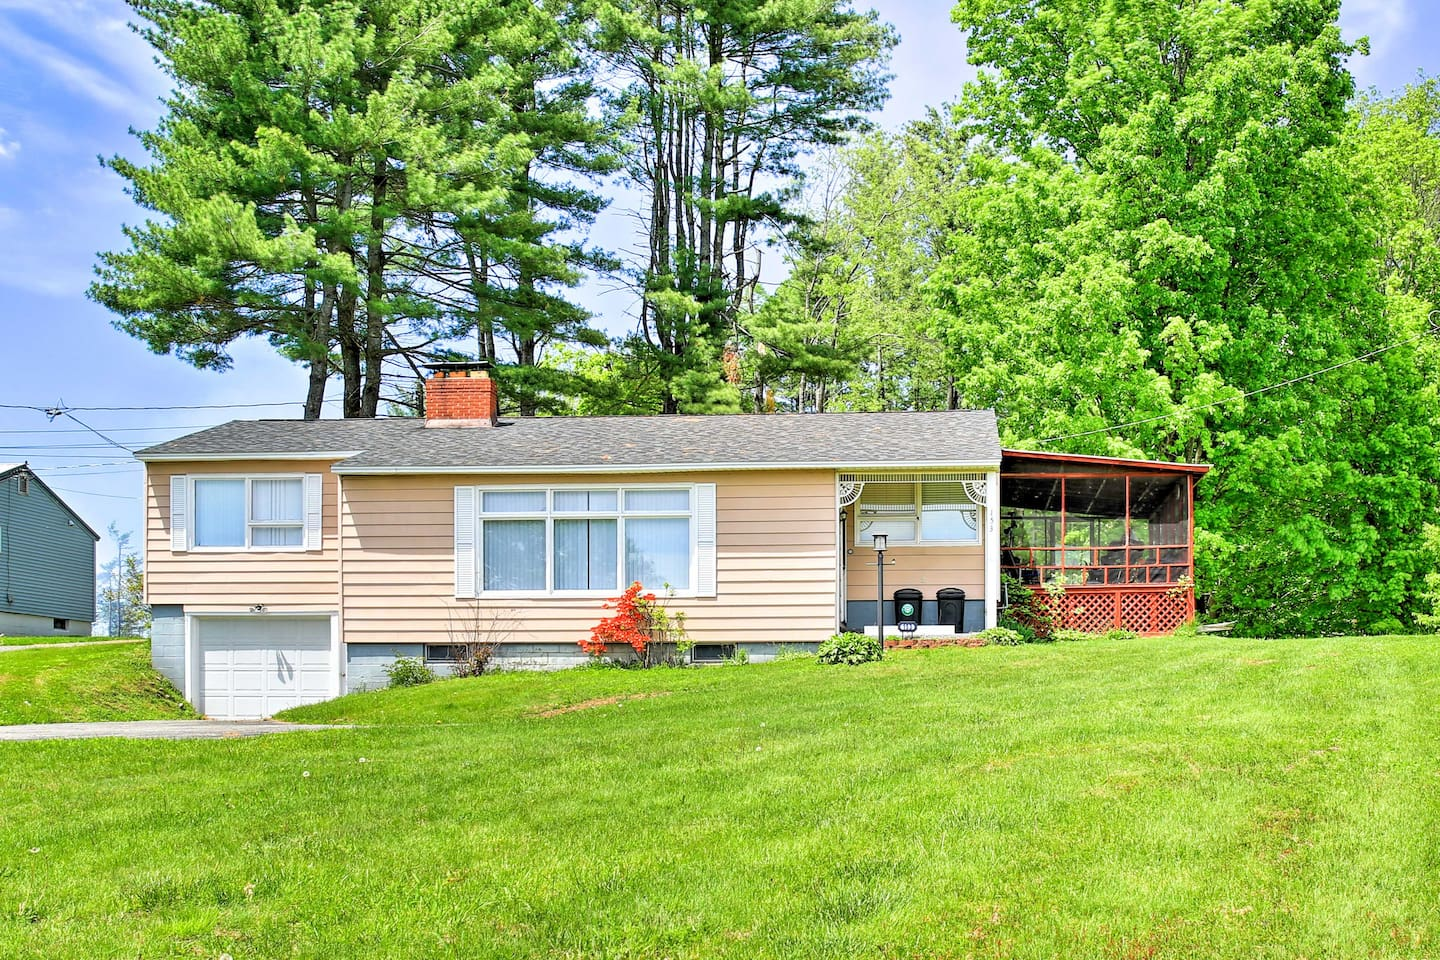 Book this 3-bedroom, 2-bath Upstate getaway for 8 guests today!